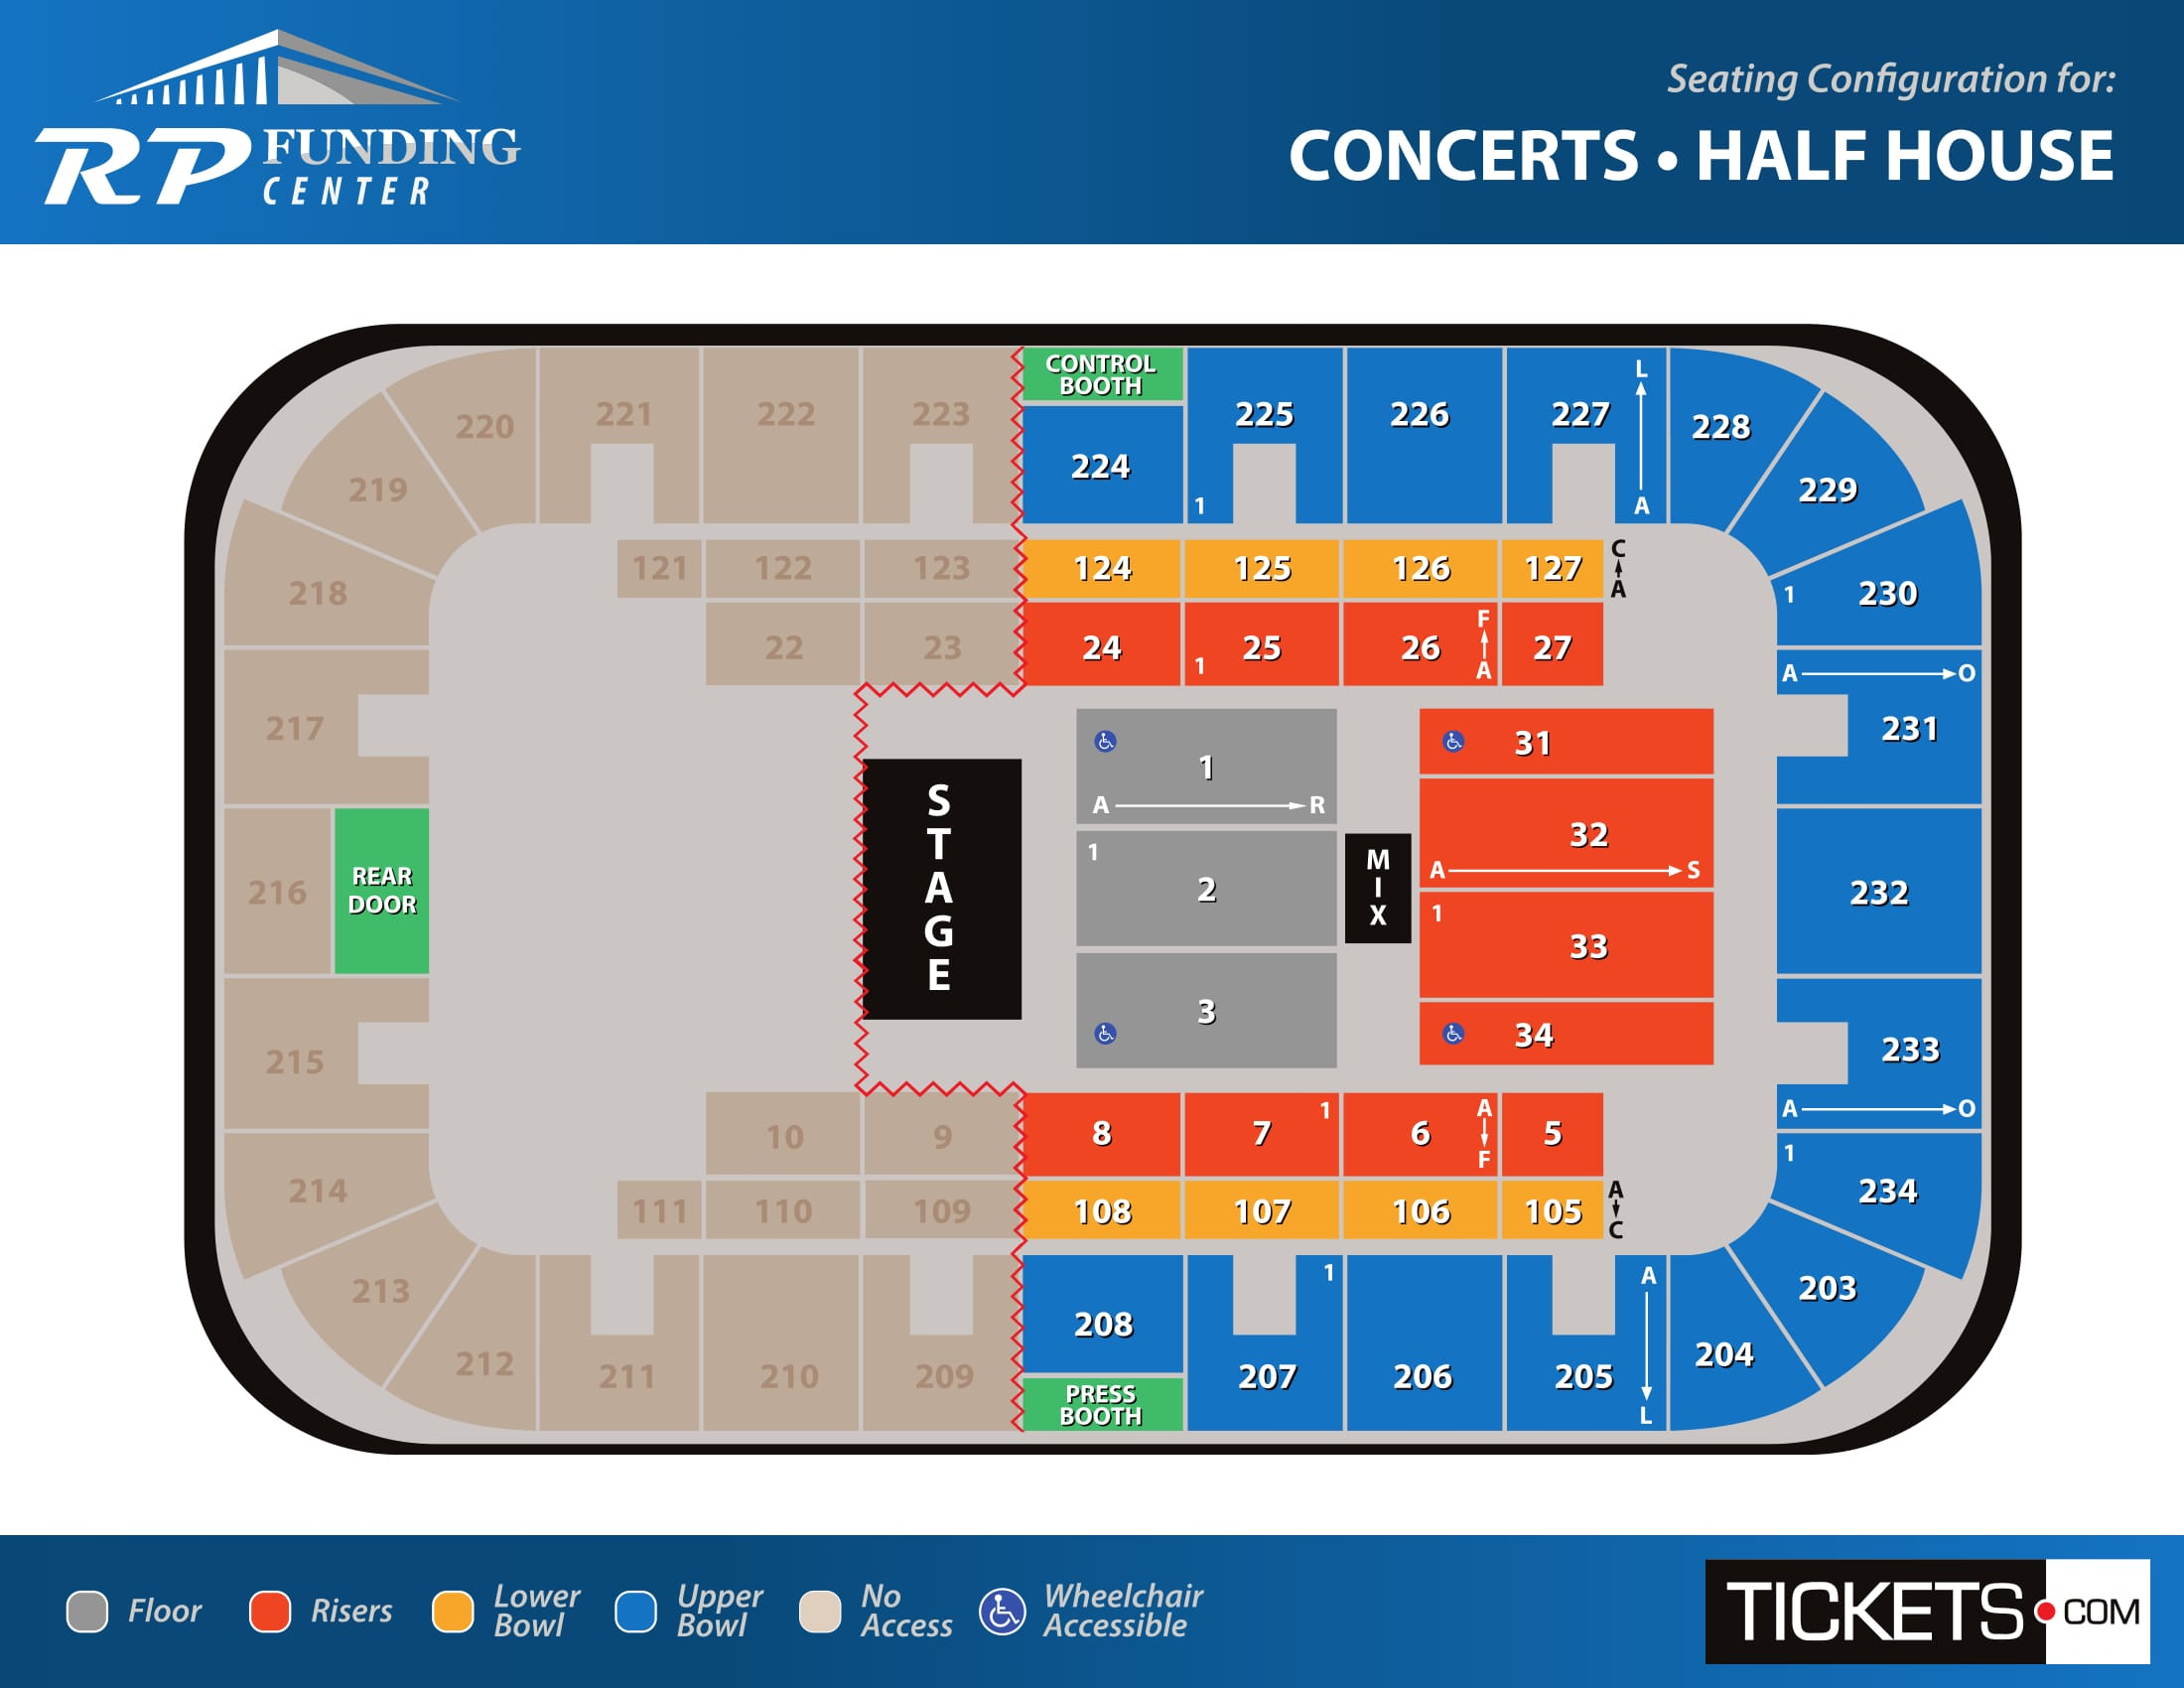 Concerts - Half House seating map